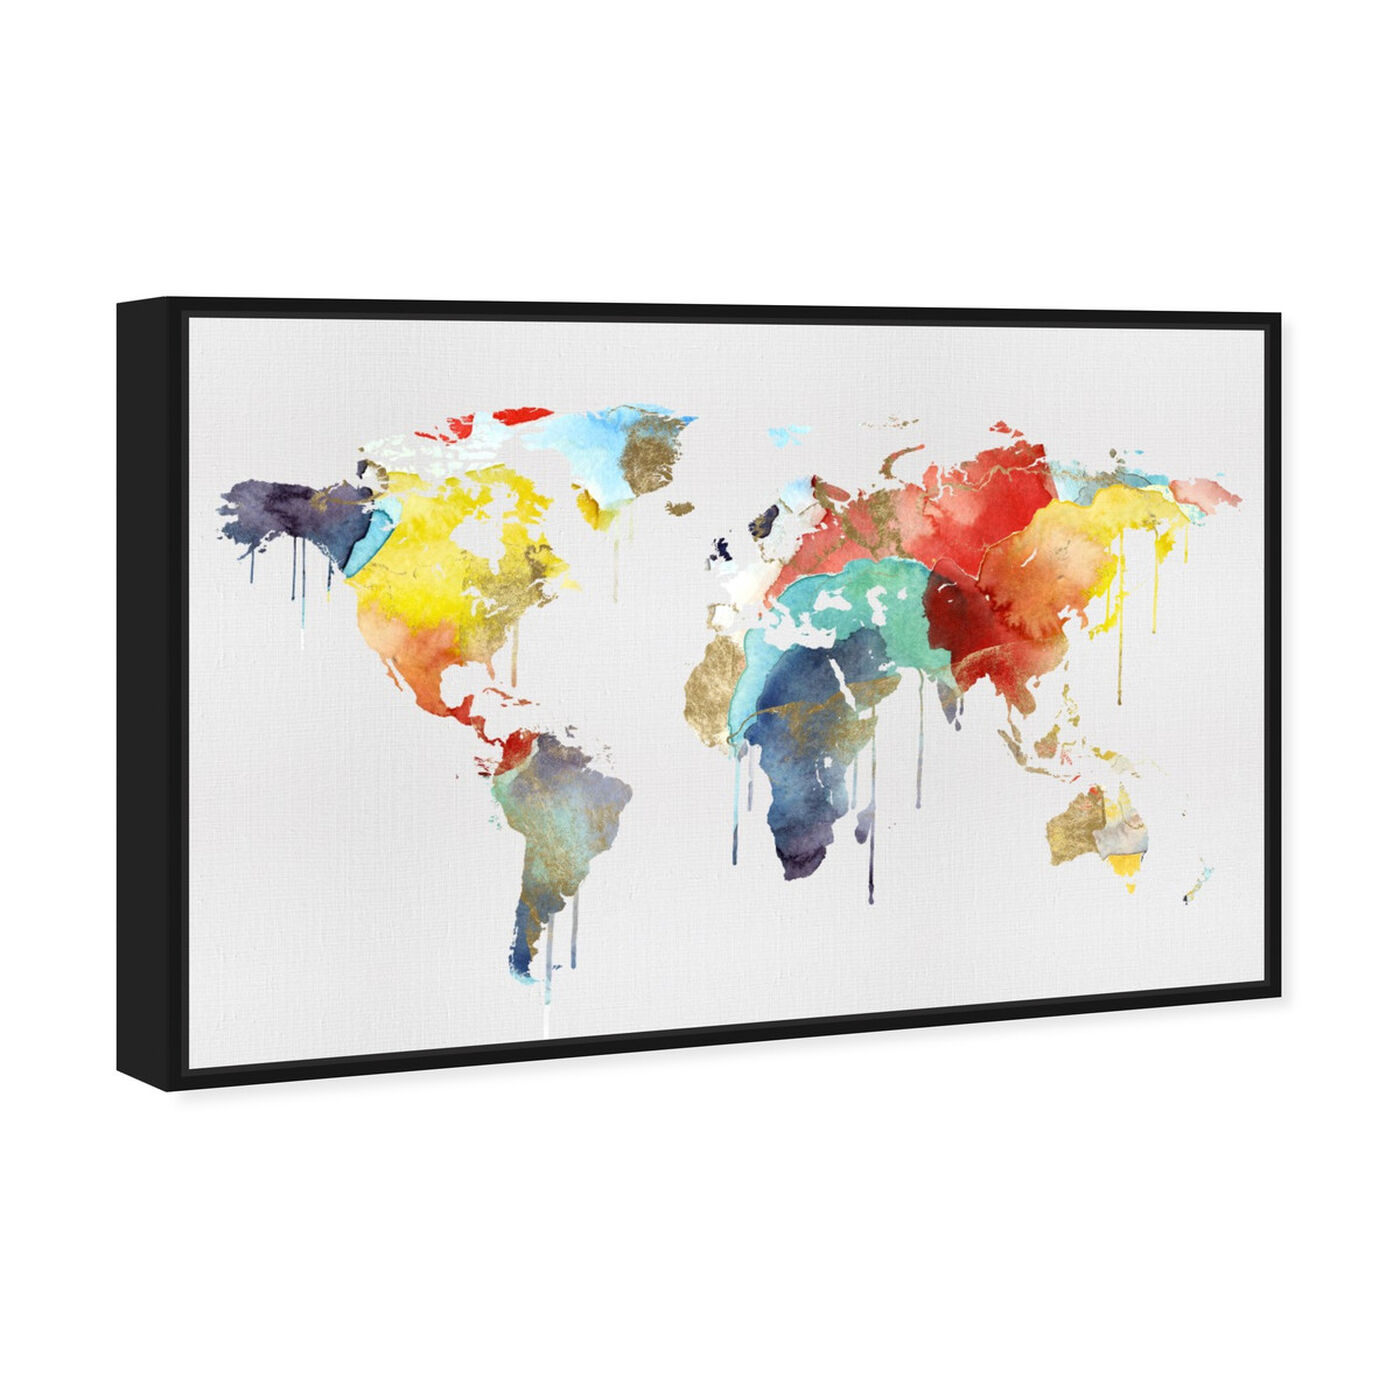 Angled view of Mapamundi Watercolor featuring maps and flags and world maps art.